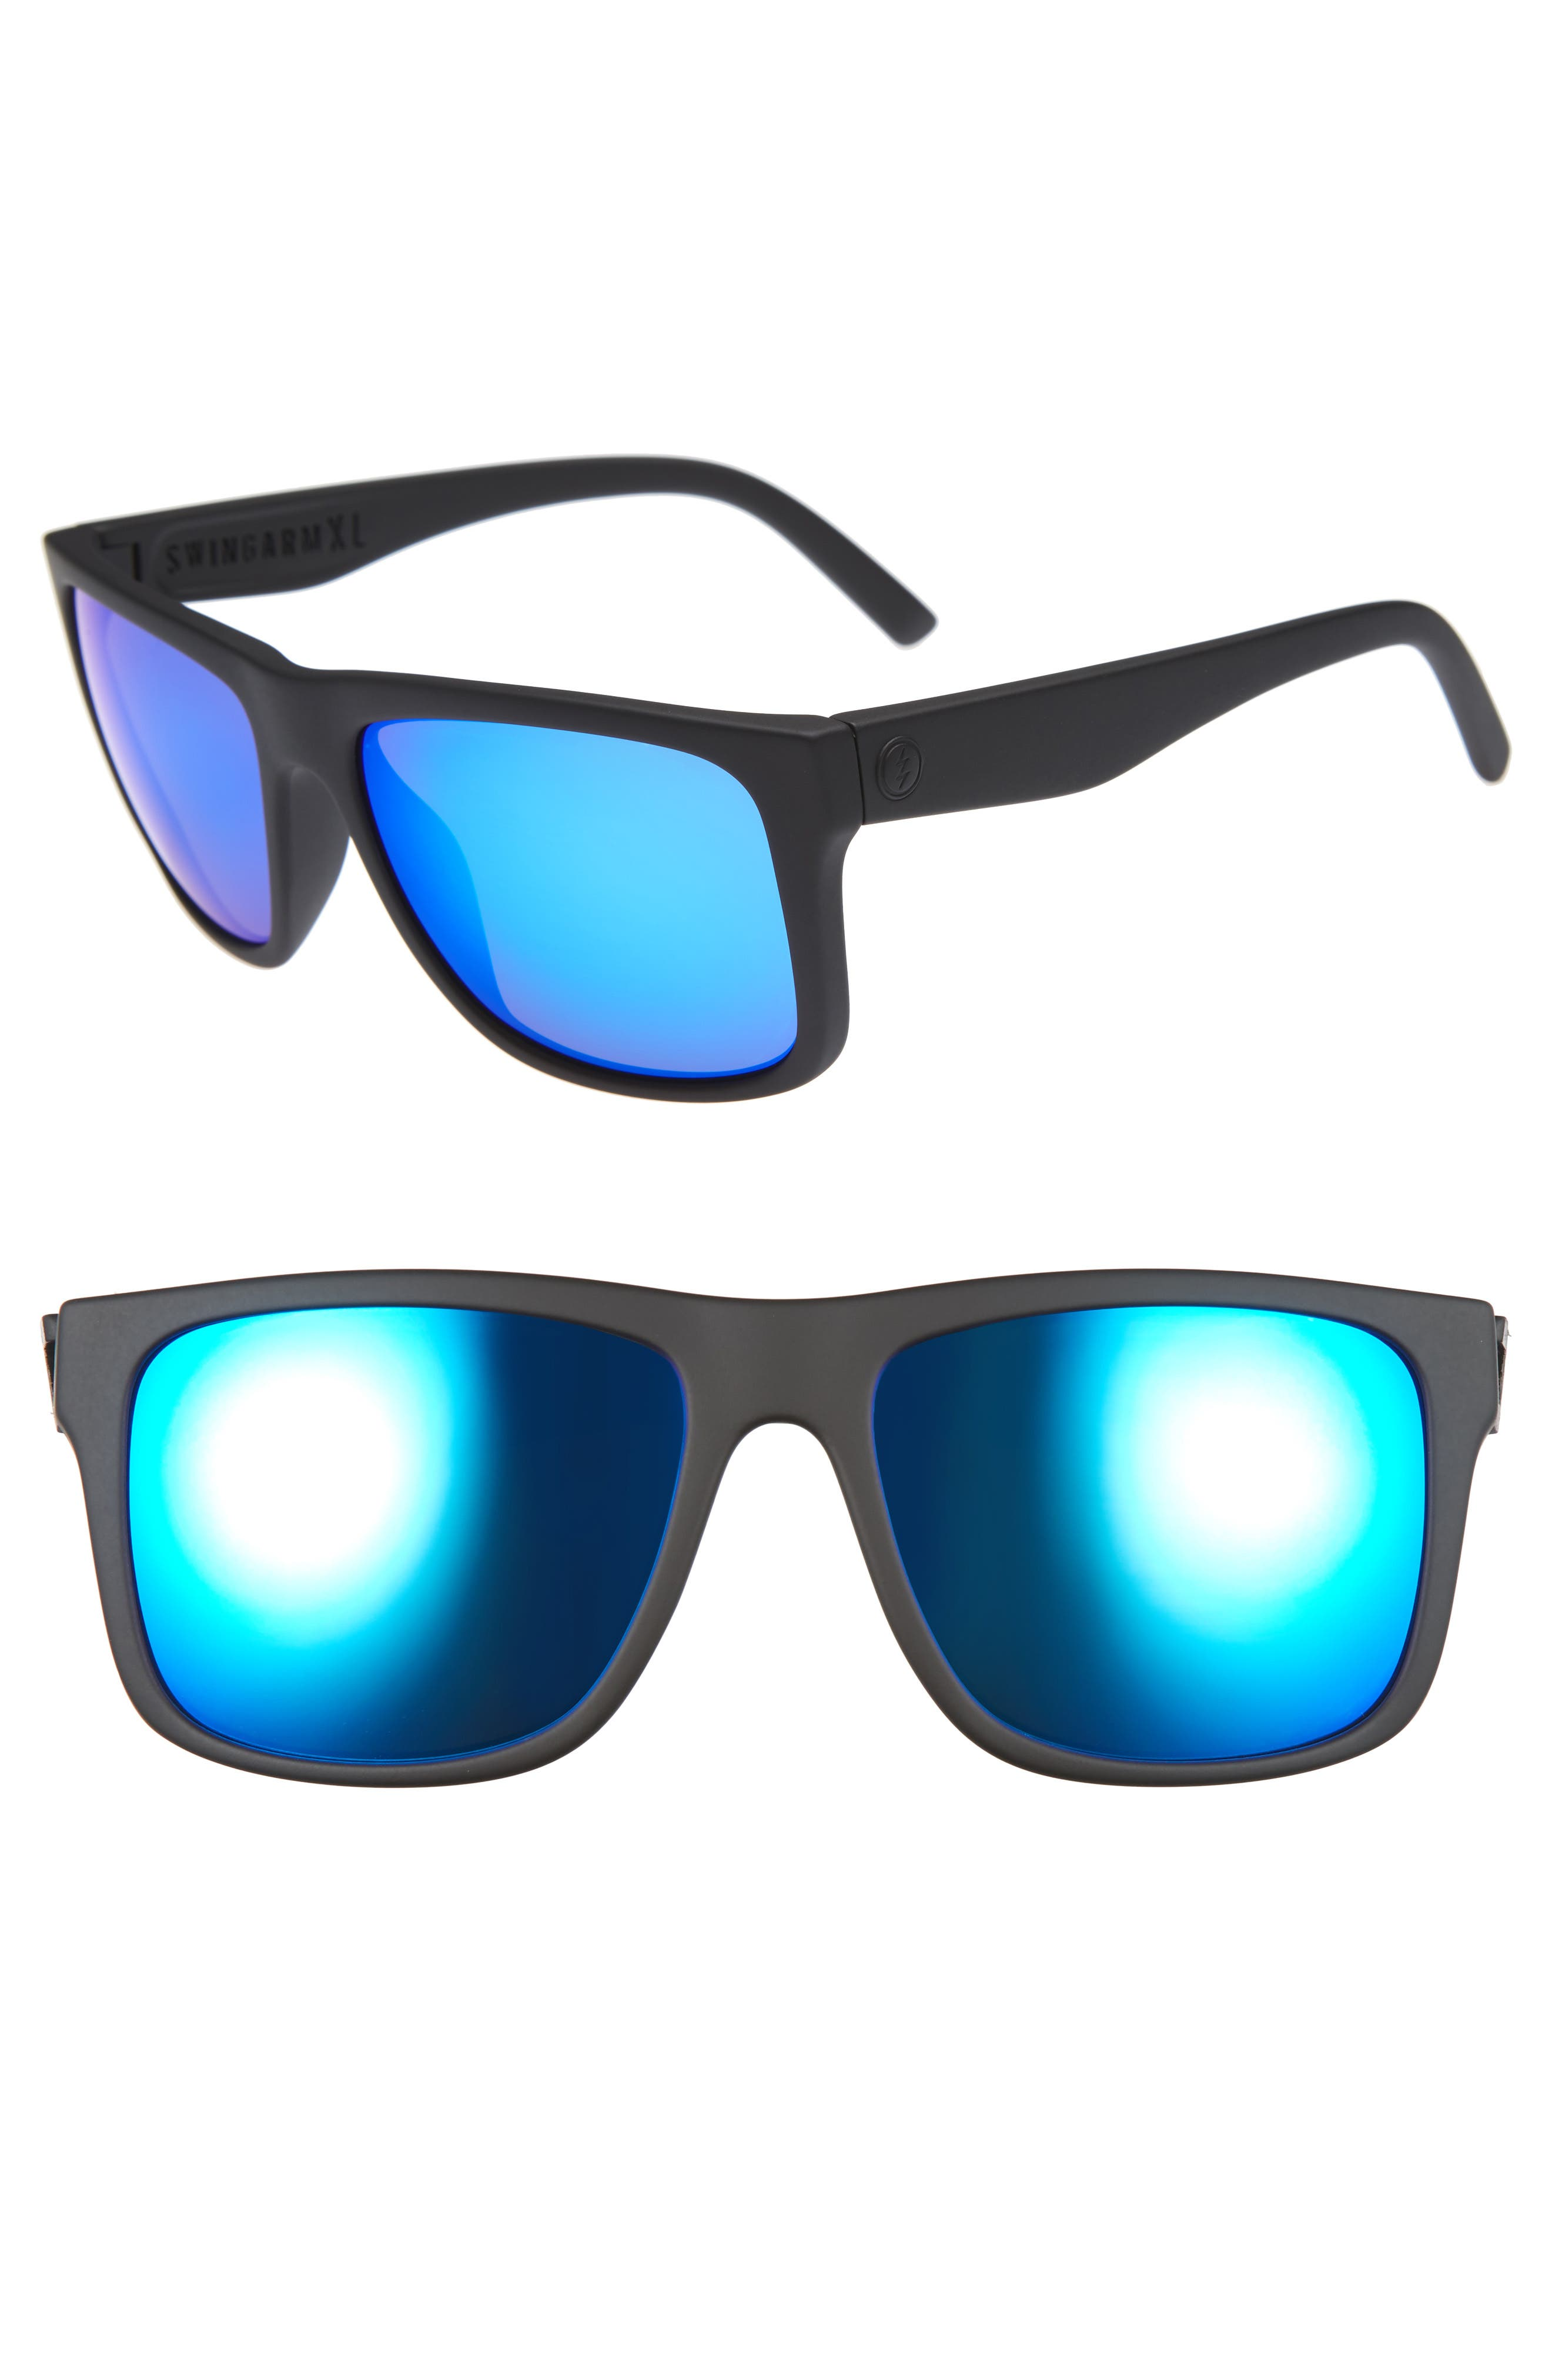 Swingarm XL 59mm Sunglasses,                         Main,                         color, Matte Black/ Blue Chrome